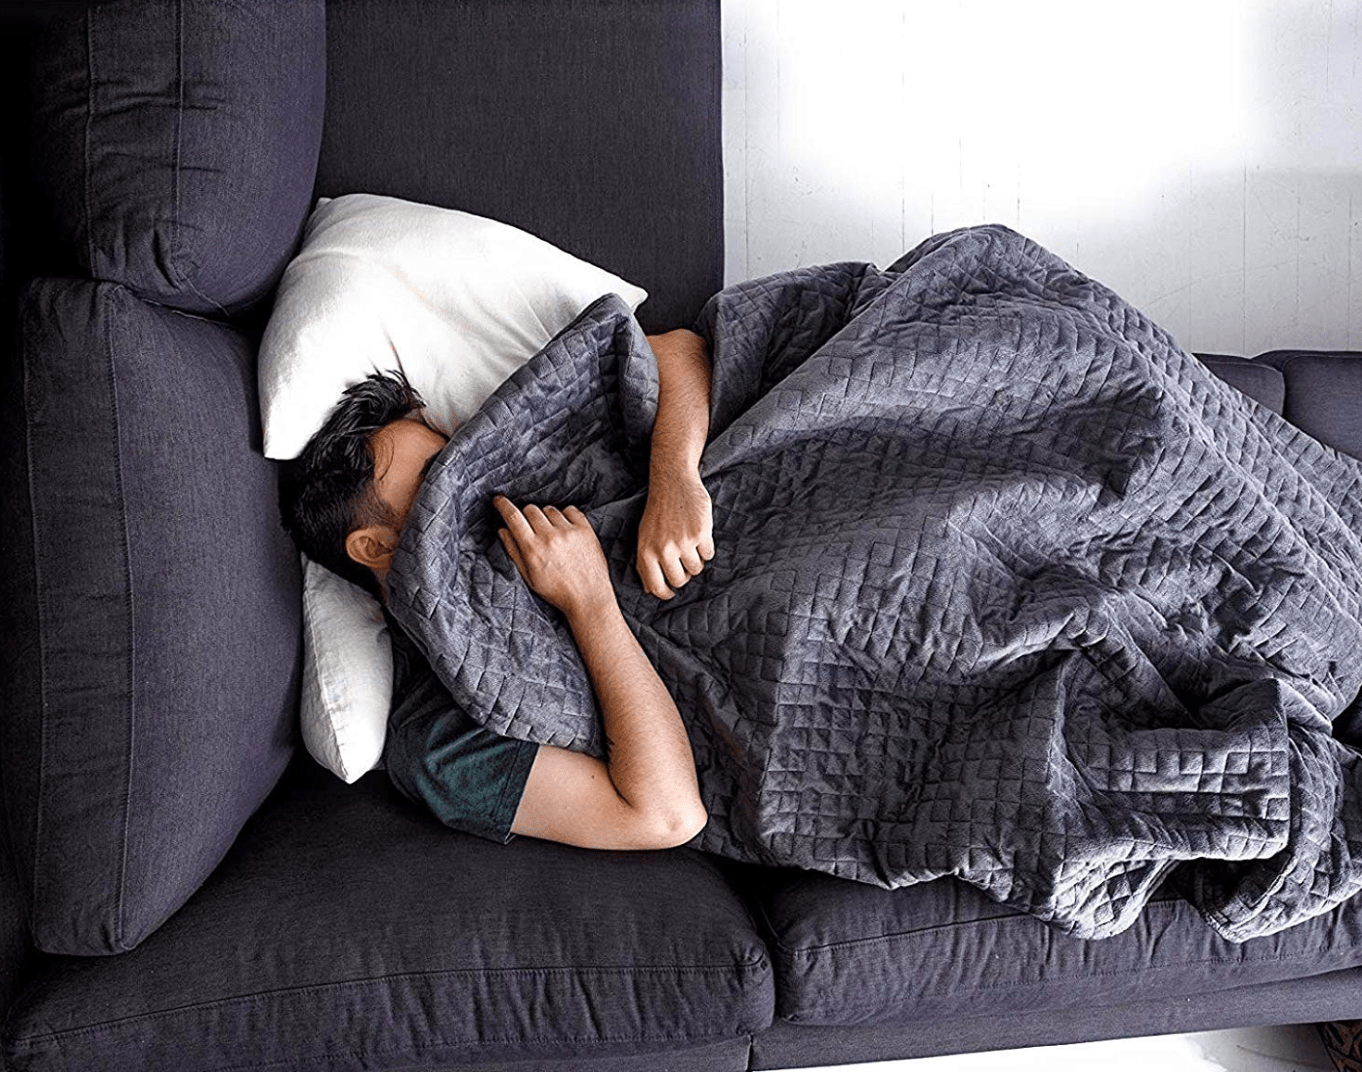 consumer reports rates the best pillows